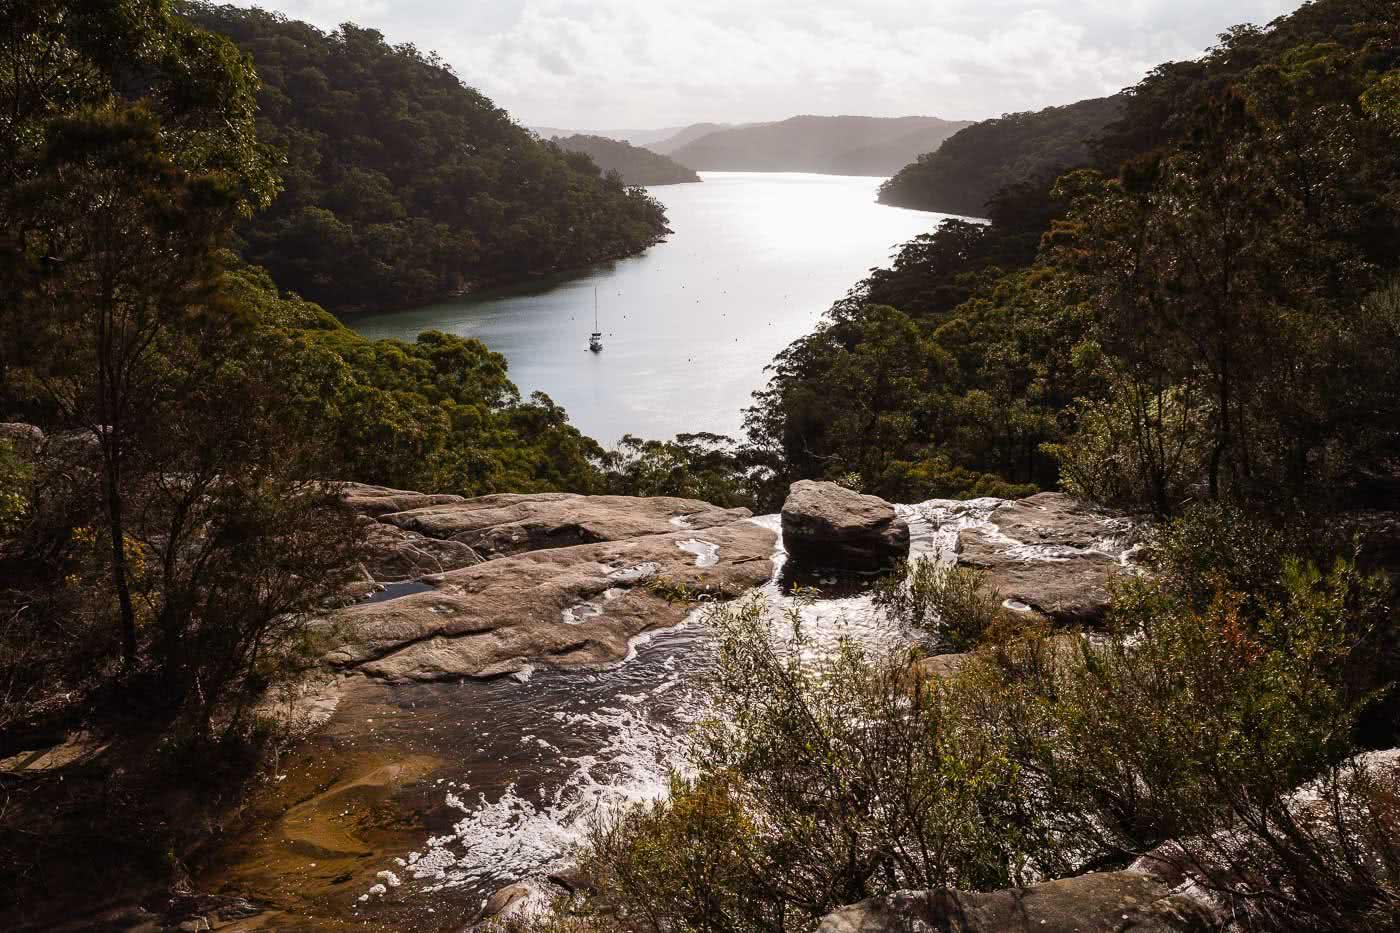 Wildflowers And Waterfalls At America Bay (NSW), Aedan O'Donnell, Hawkesbury River, rocks, trees, bay, waterfall